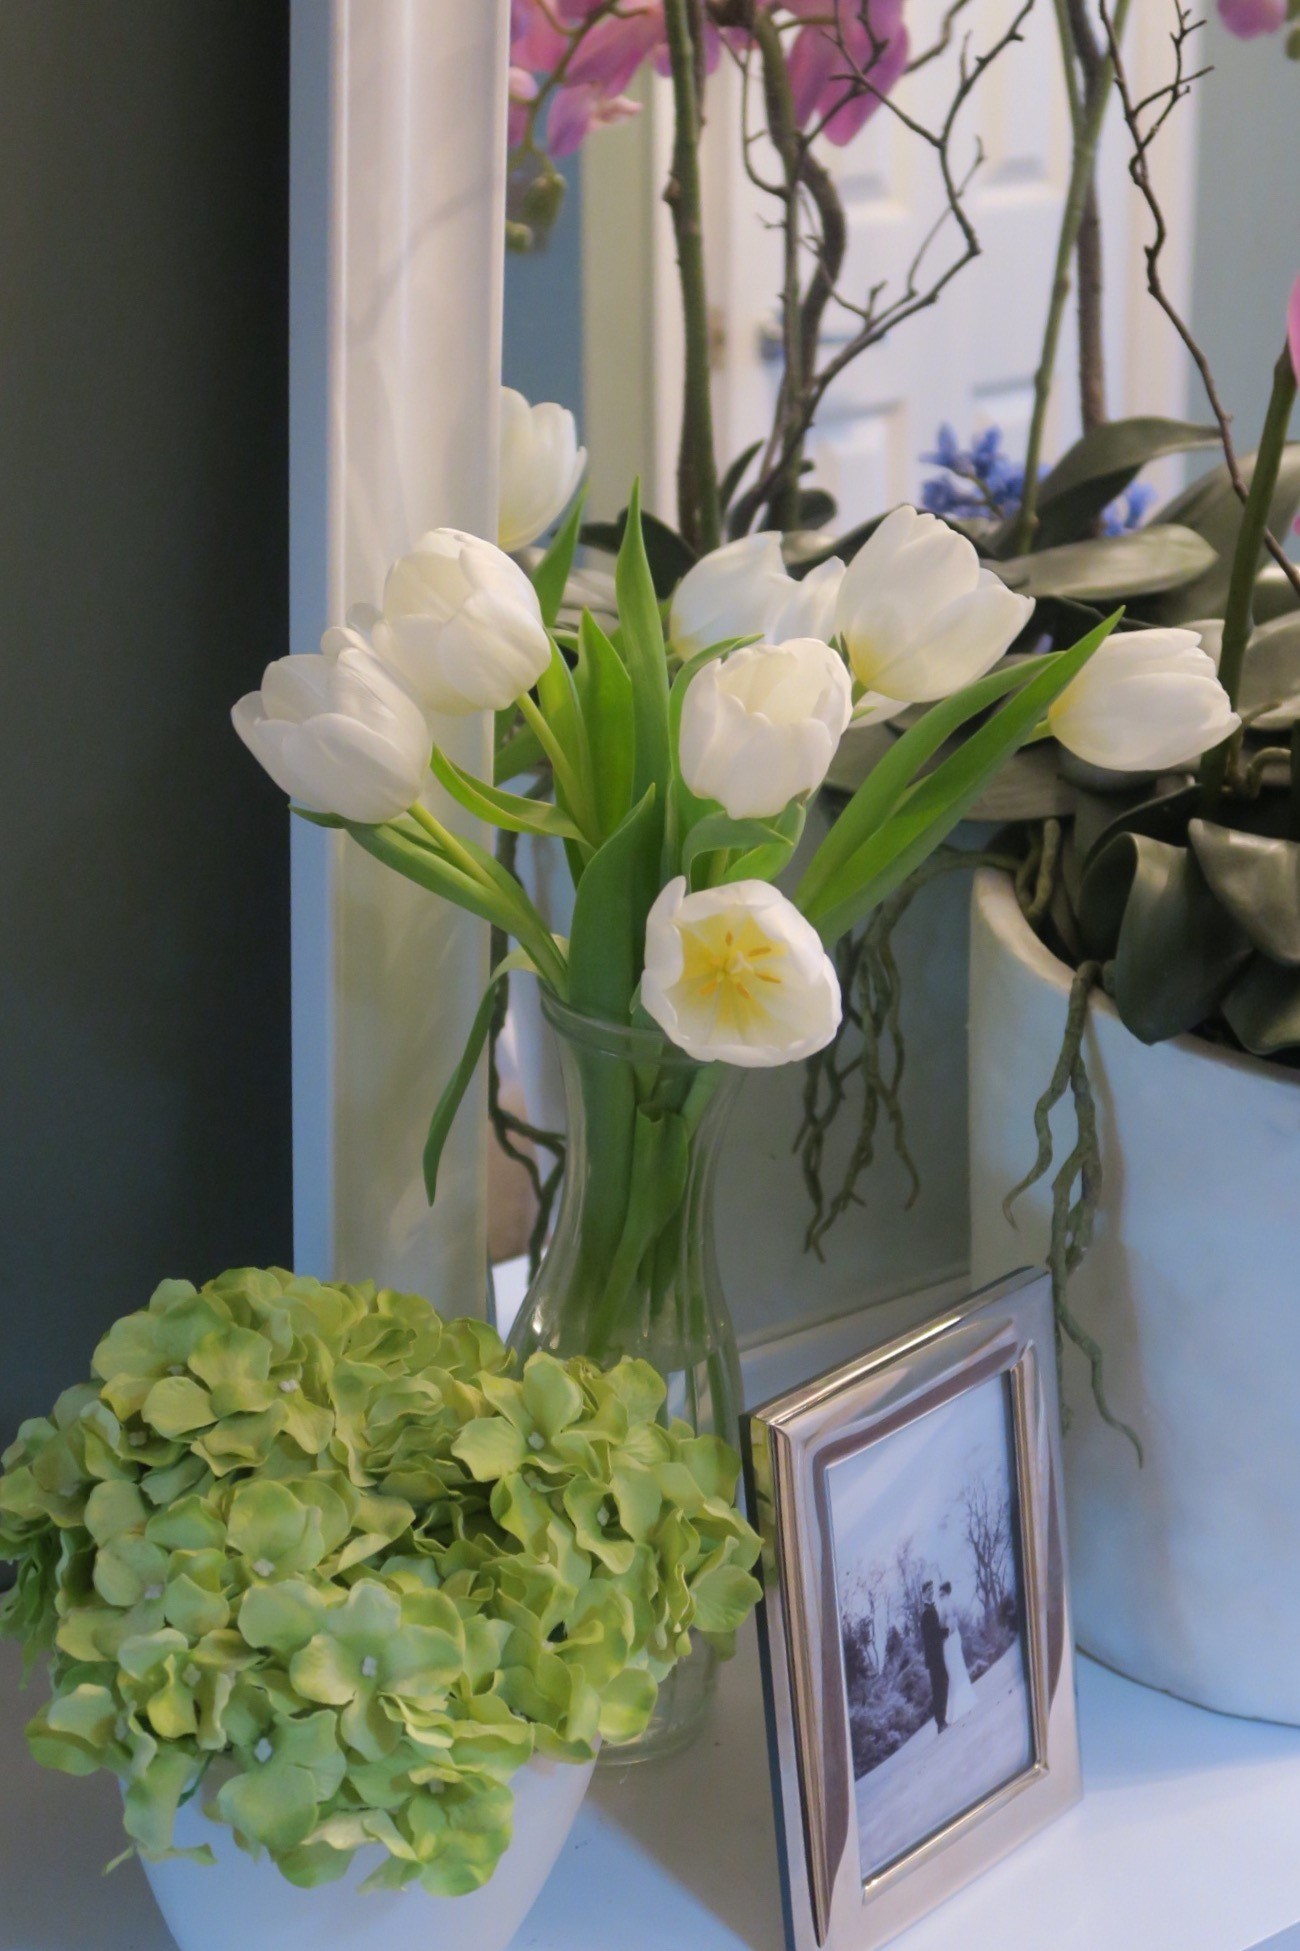 Mixing real flowers in with fakes keeps the display varied and visitors guessing.